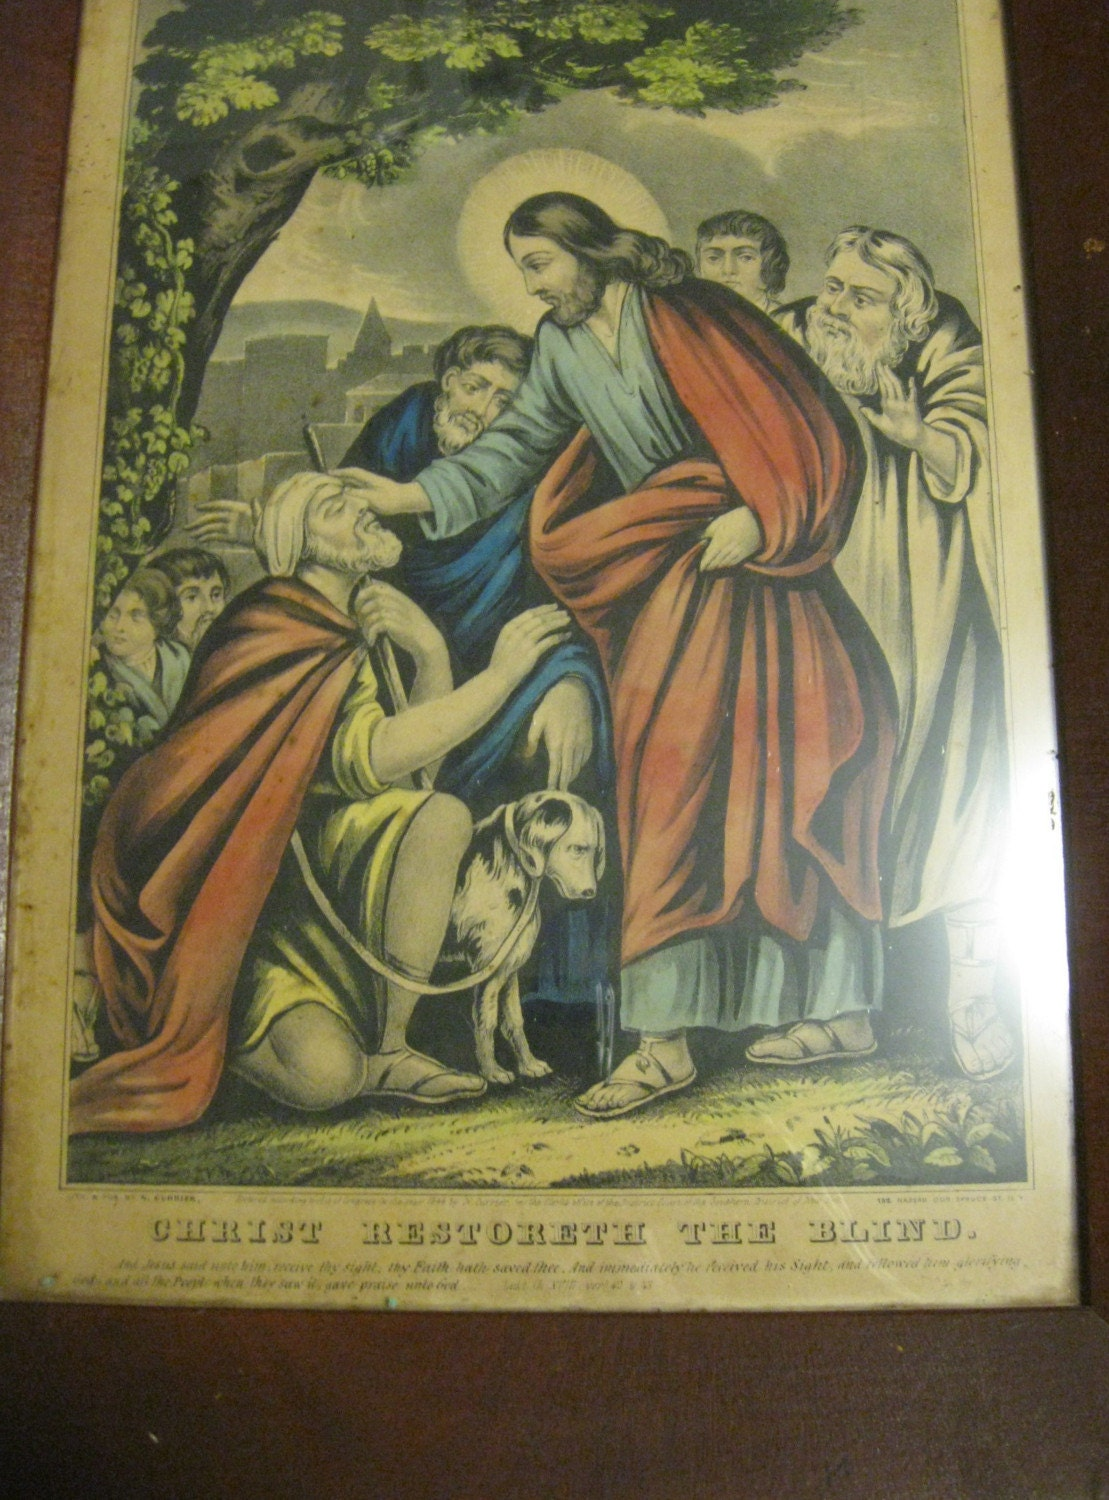 1846 Christ Restoreth the Blind Antique Currier Hand Colored Lithograph